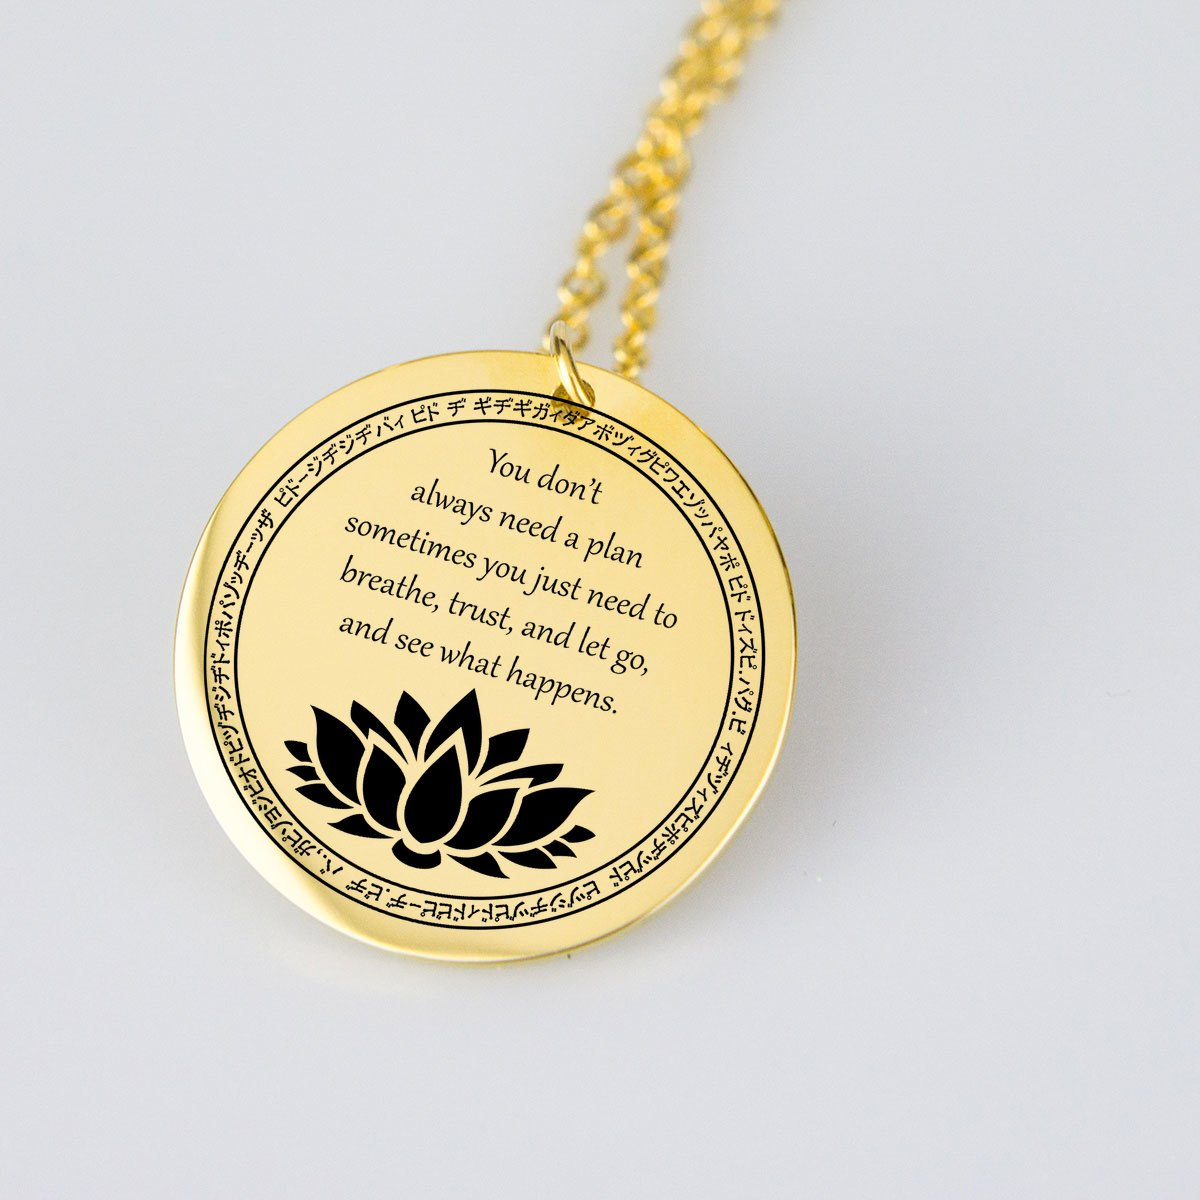 Just Breath - Shiny Gold Pendant-pendant-Hearts and Gifts